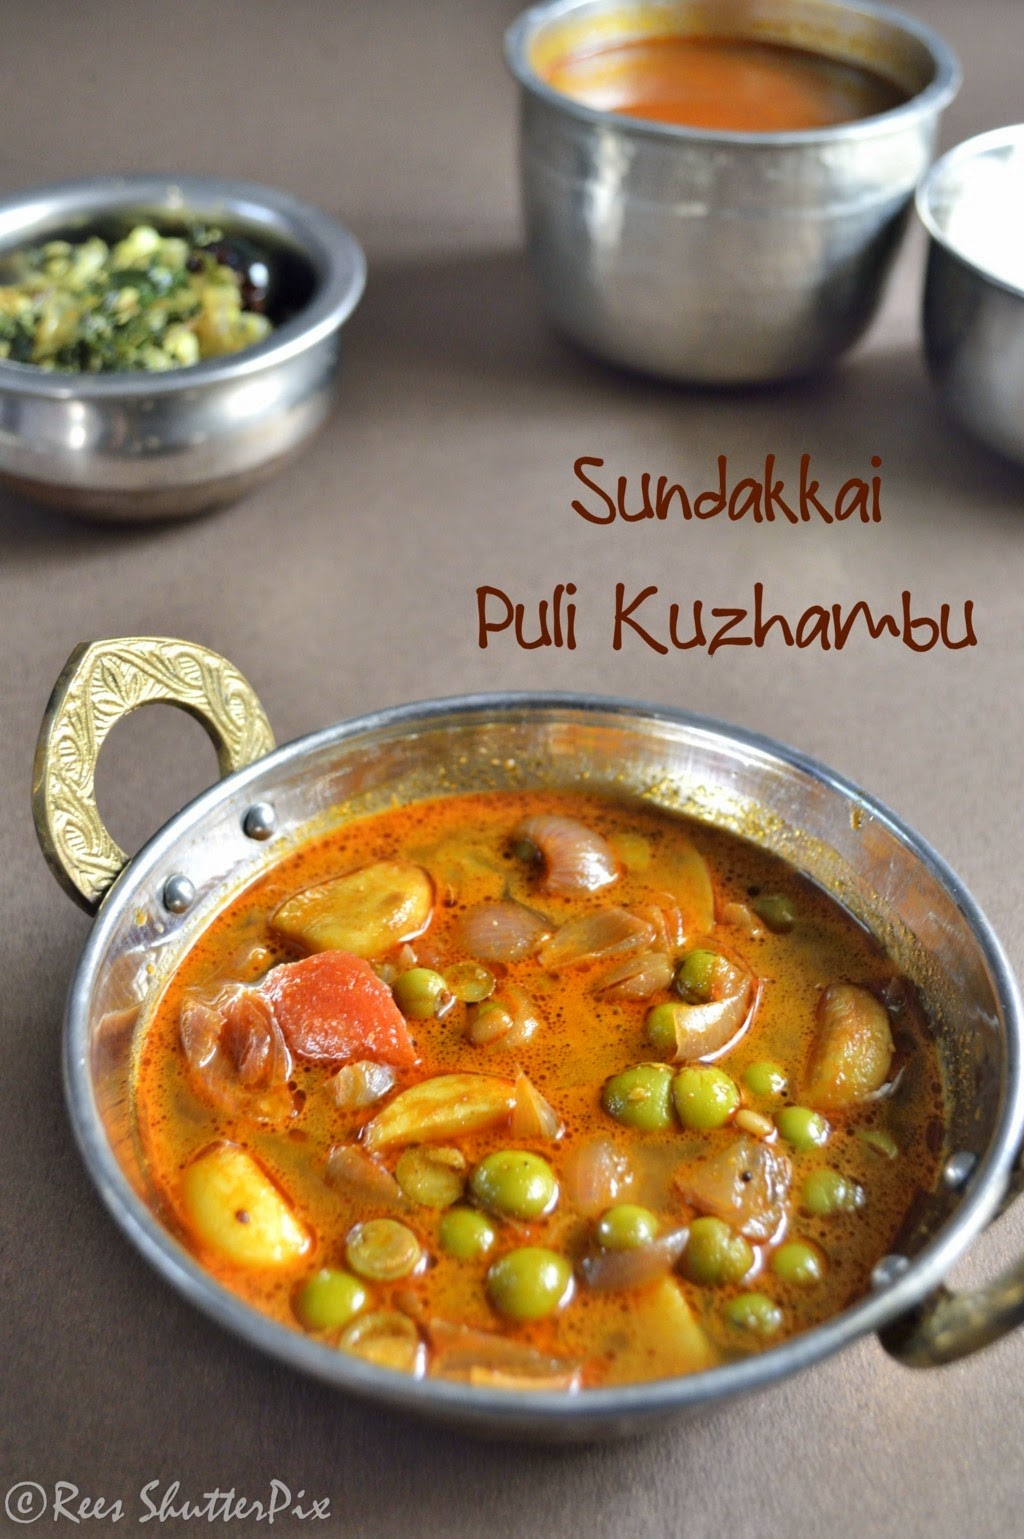 sundakkai puli kuzhambu recipe, sidedish for rice,  vathal kuzhambu recipe,vathal kulambu,vathal kuzhambu,sundakkai recipes,sundakkai vathal kuzhambu,south indian kuzhambu recipe,recipes,puli kuzhambu, turkey berry tamarind curry recipe, turkey berry recipes. chundakkai recipes